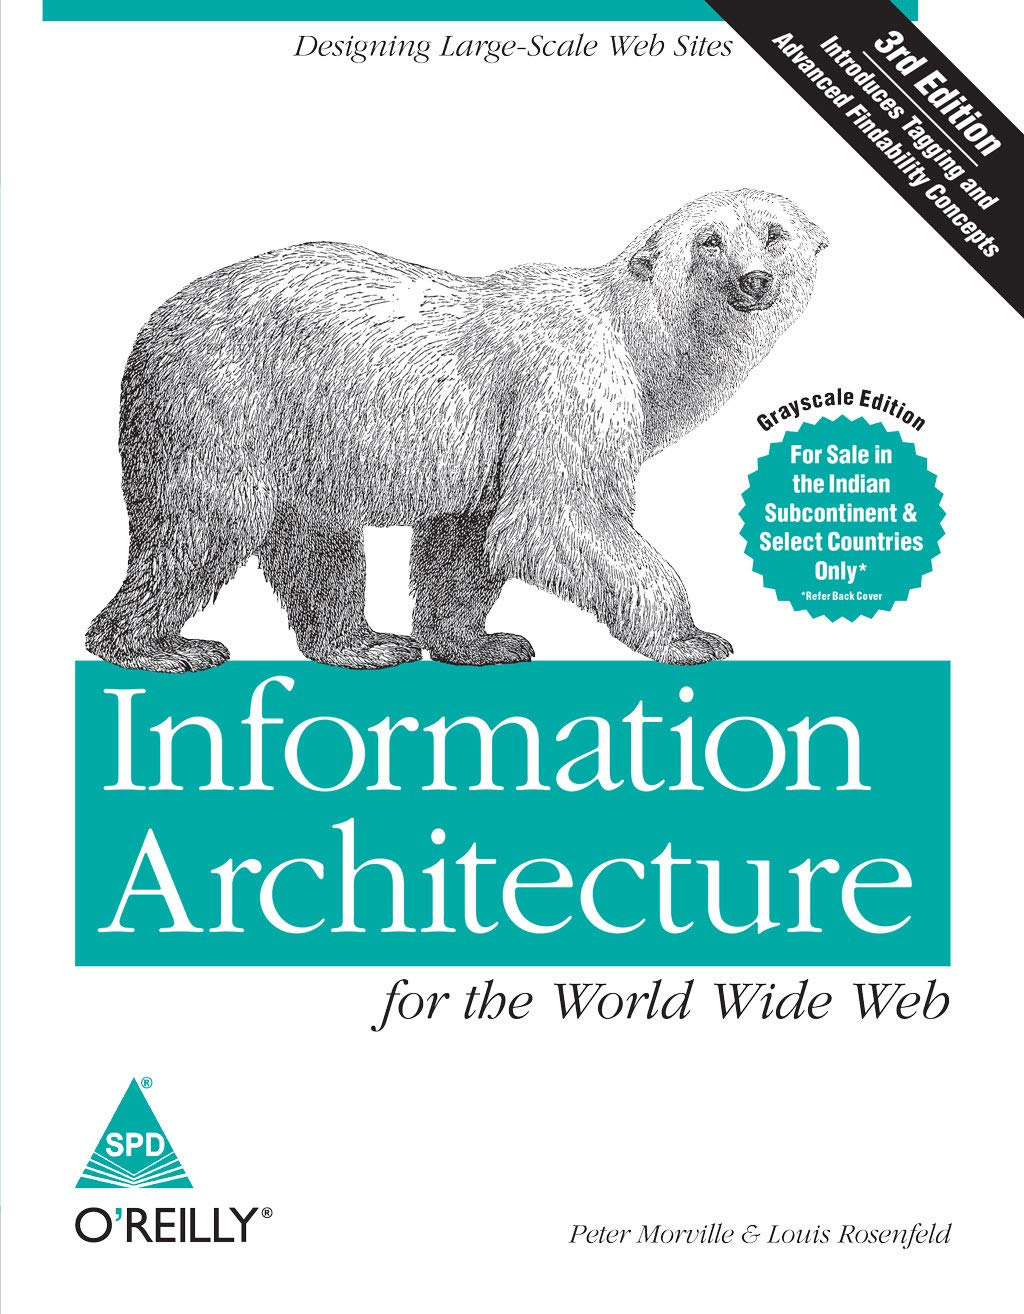 Buy Information Architecture For The World Wide Web Designing Large Scale Web Sites Third Edition Book Online At Low Prices In India Information Architecture For The World Wide Web Designing Large Scale Web